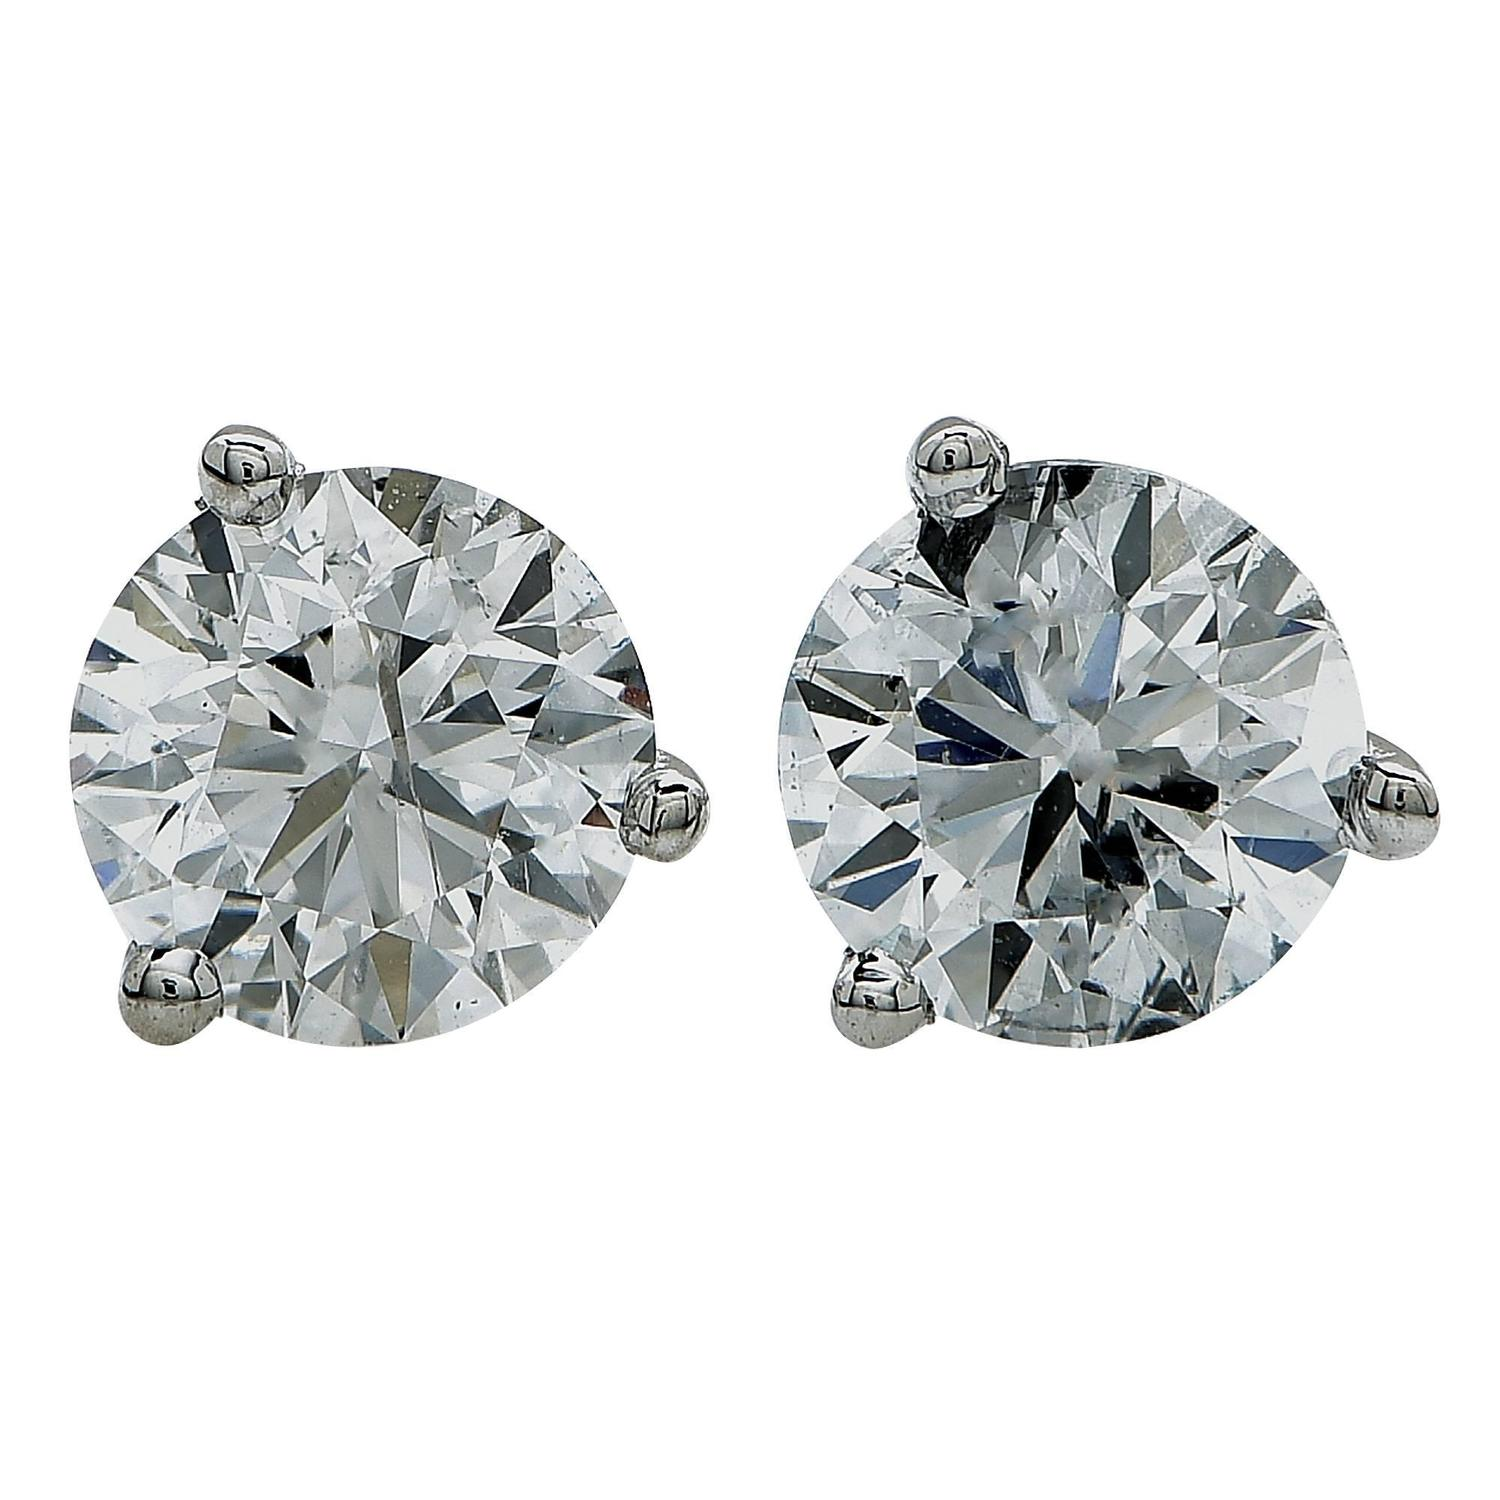 1 carat stud earrings sale 1 13 carat gold stud earrings for sale at 1stdibs 6353